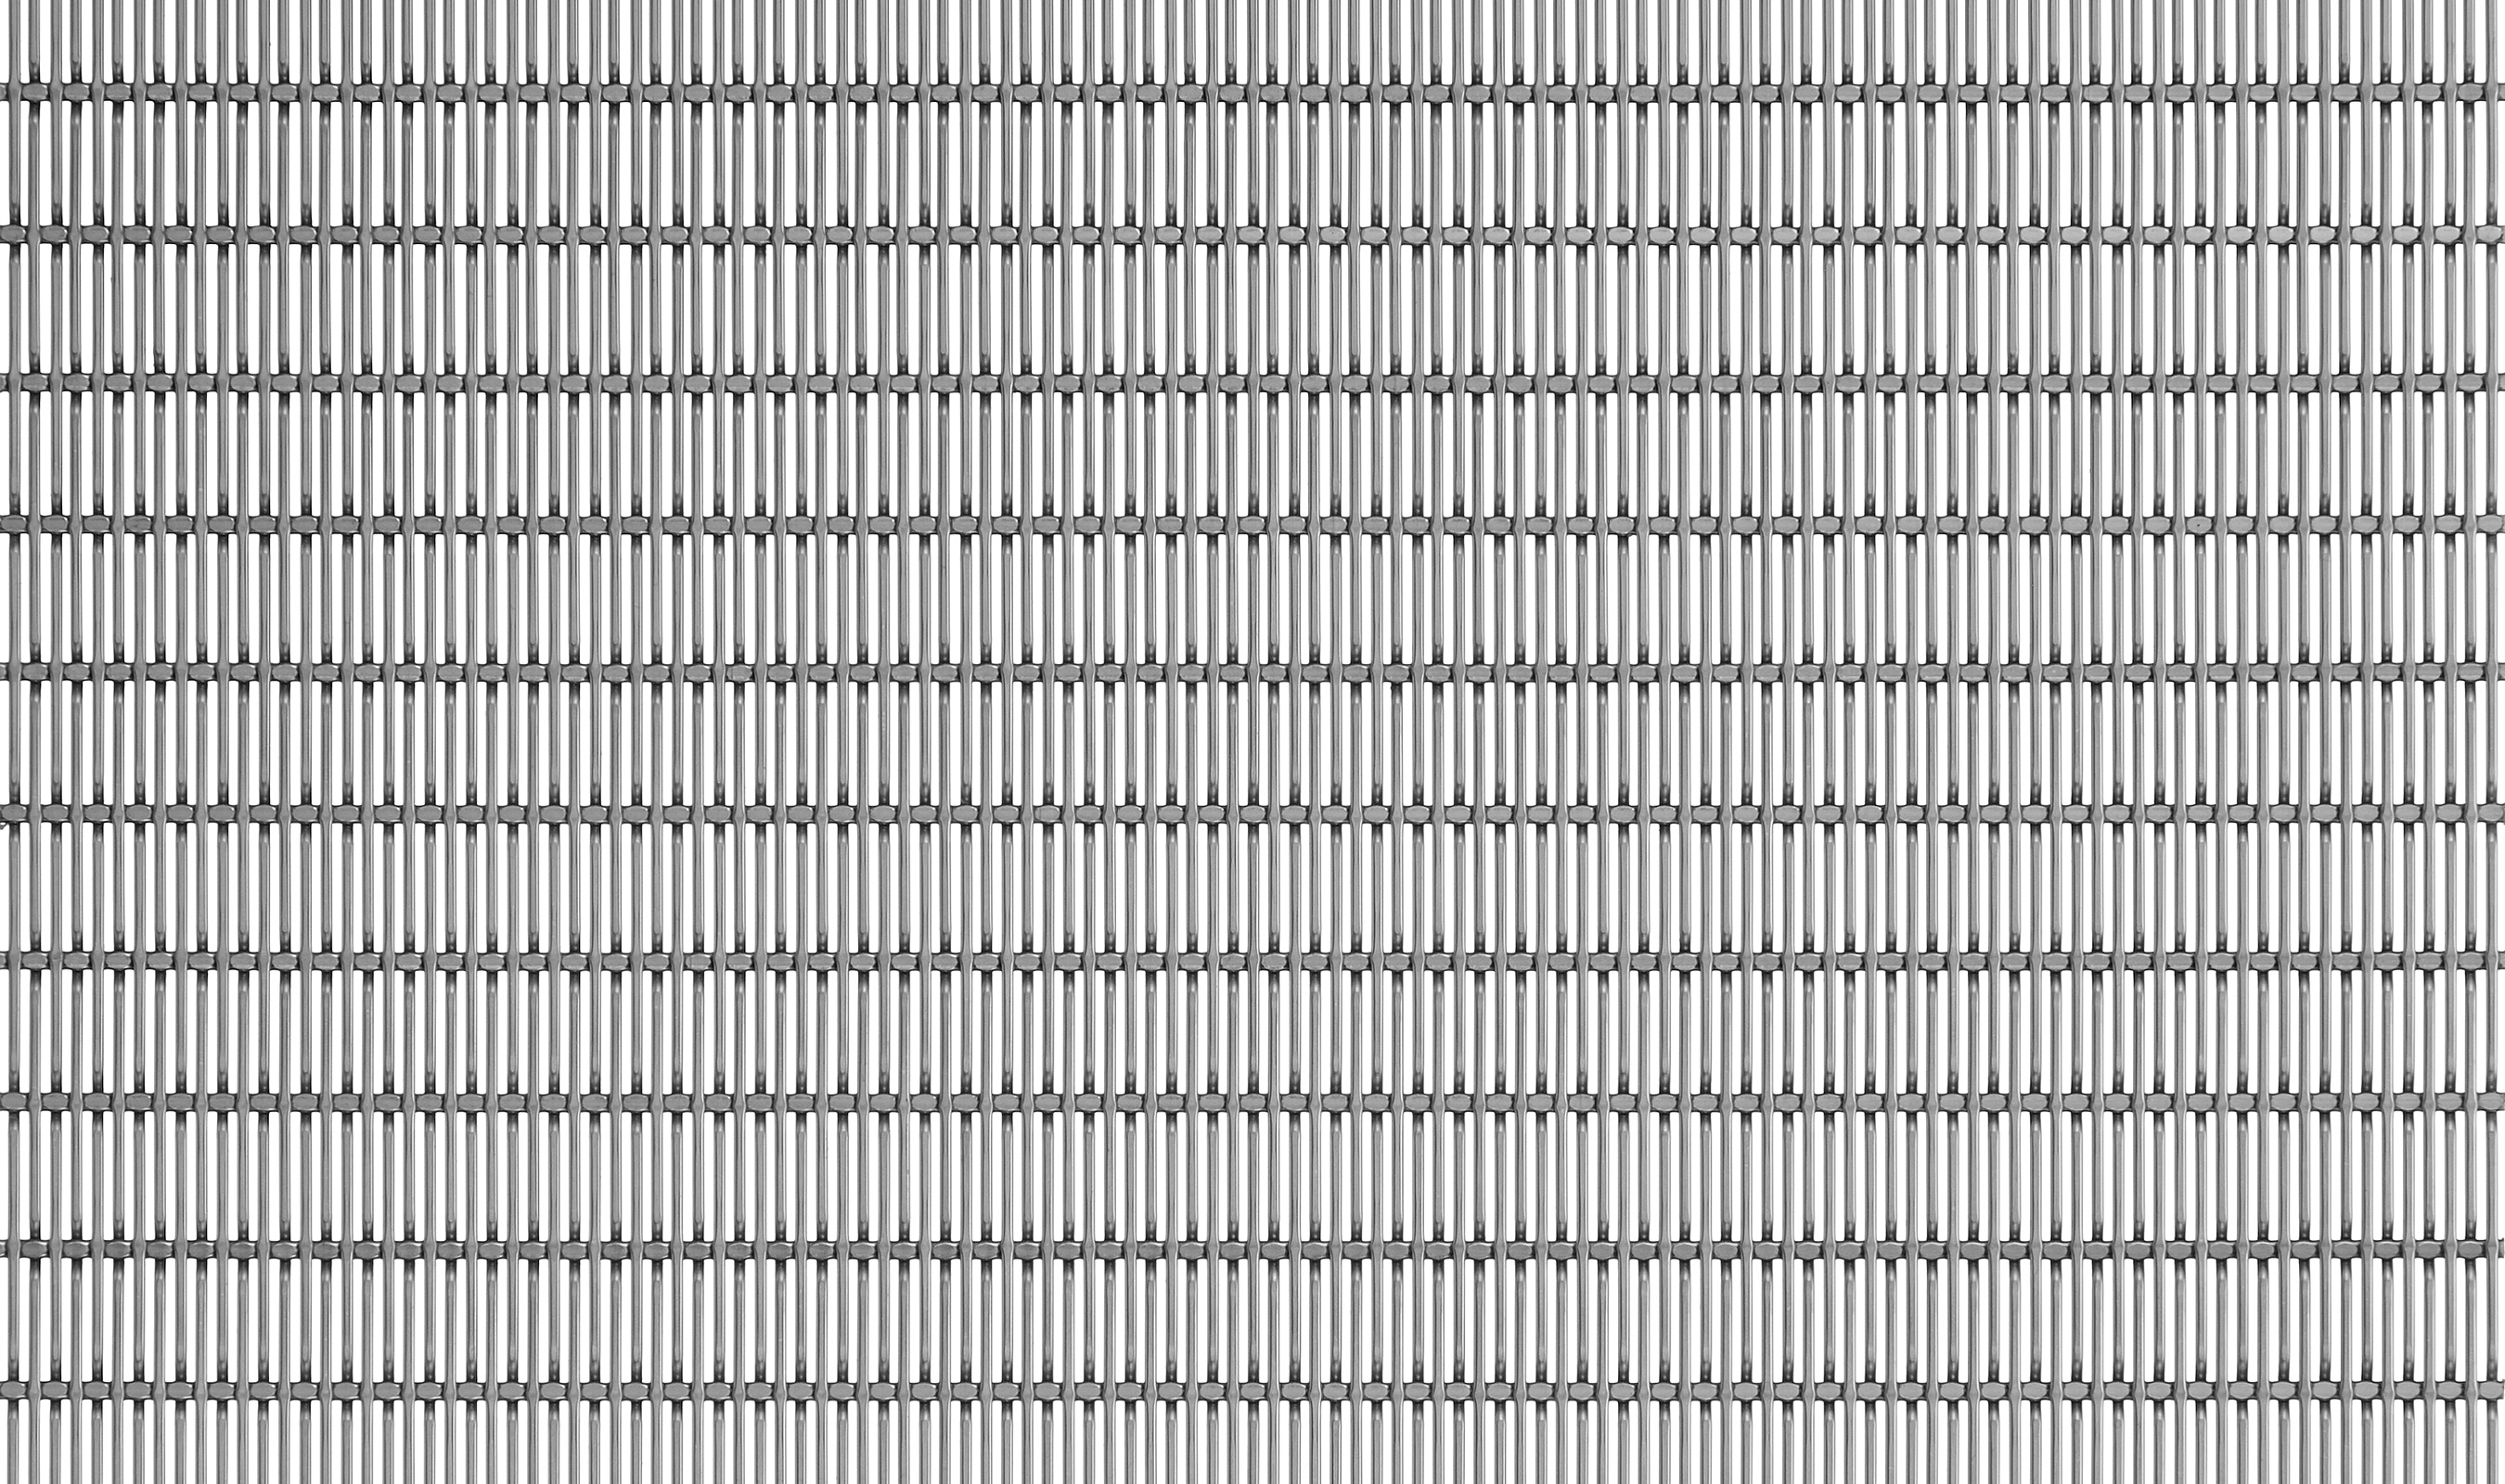 PFZ-43 Architectural wire mesh pattern in stainless steel